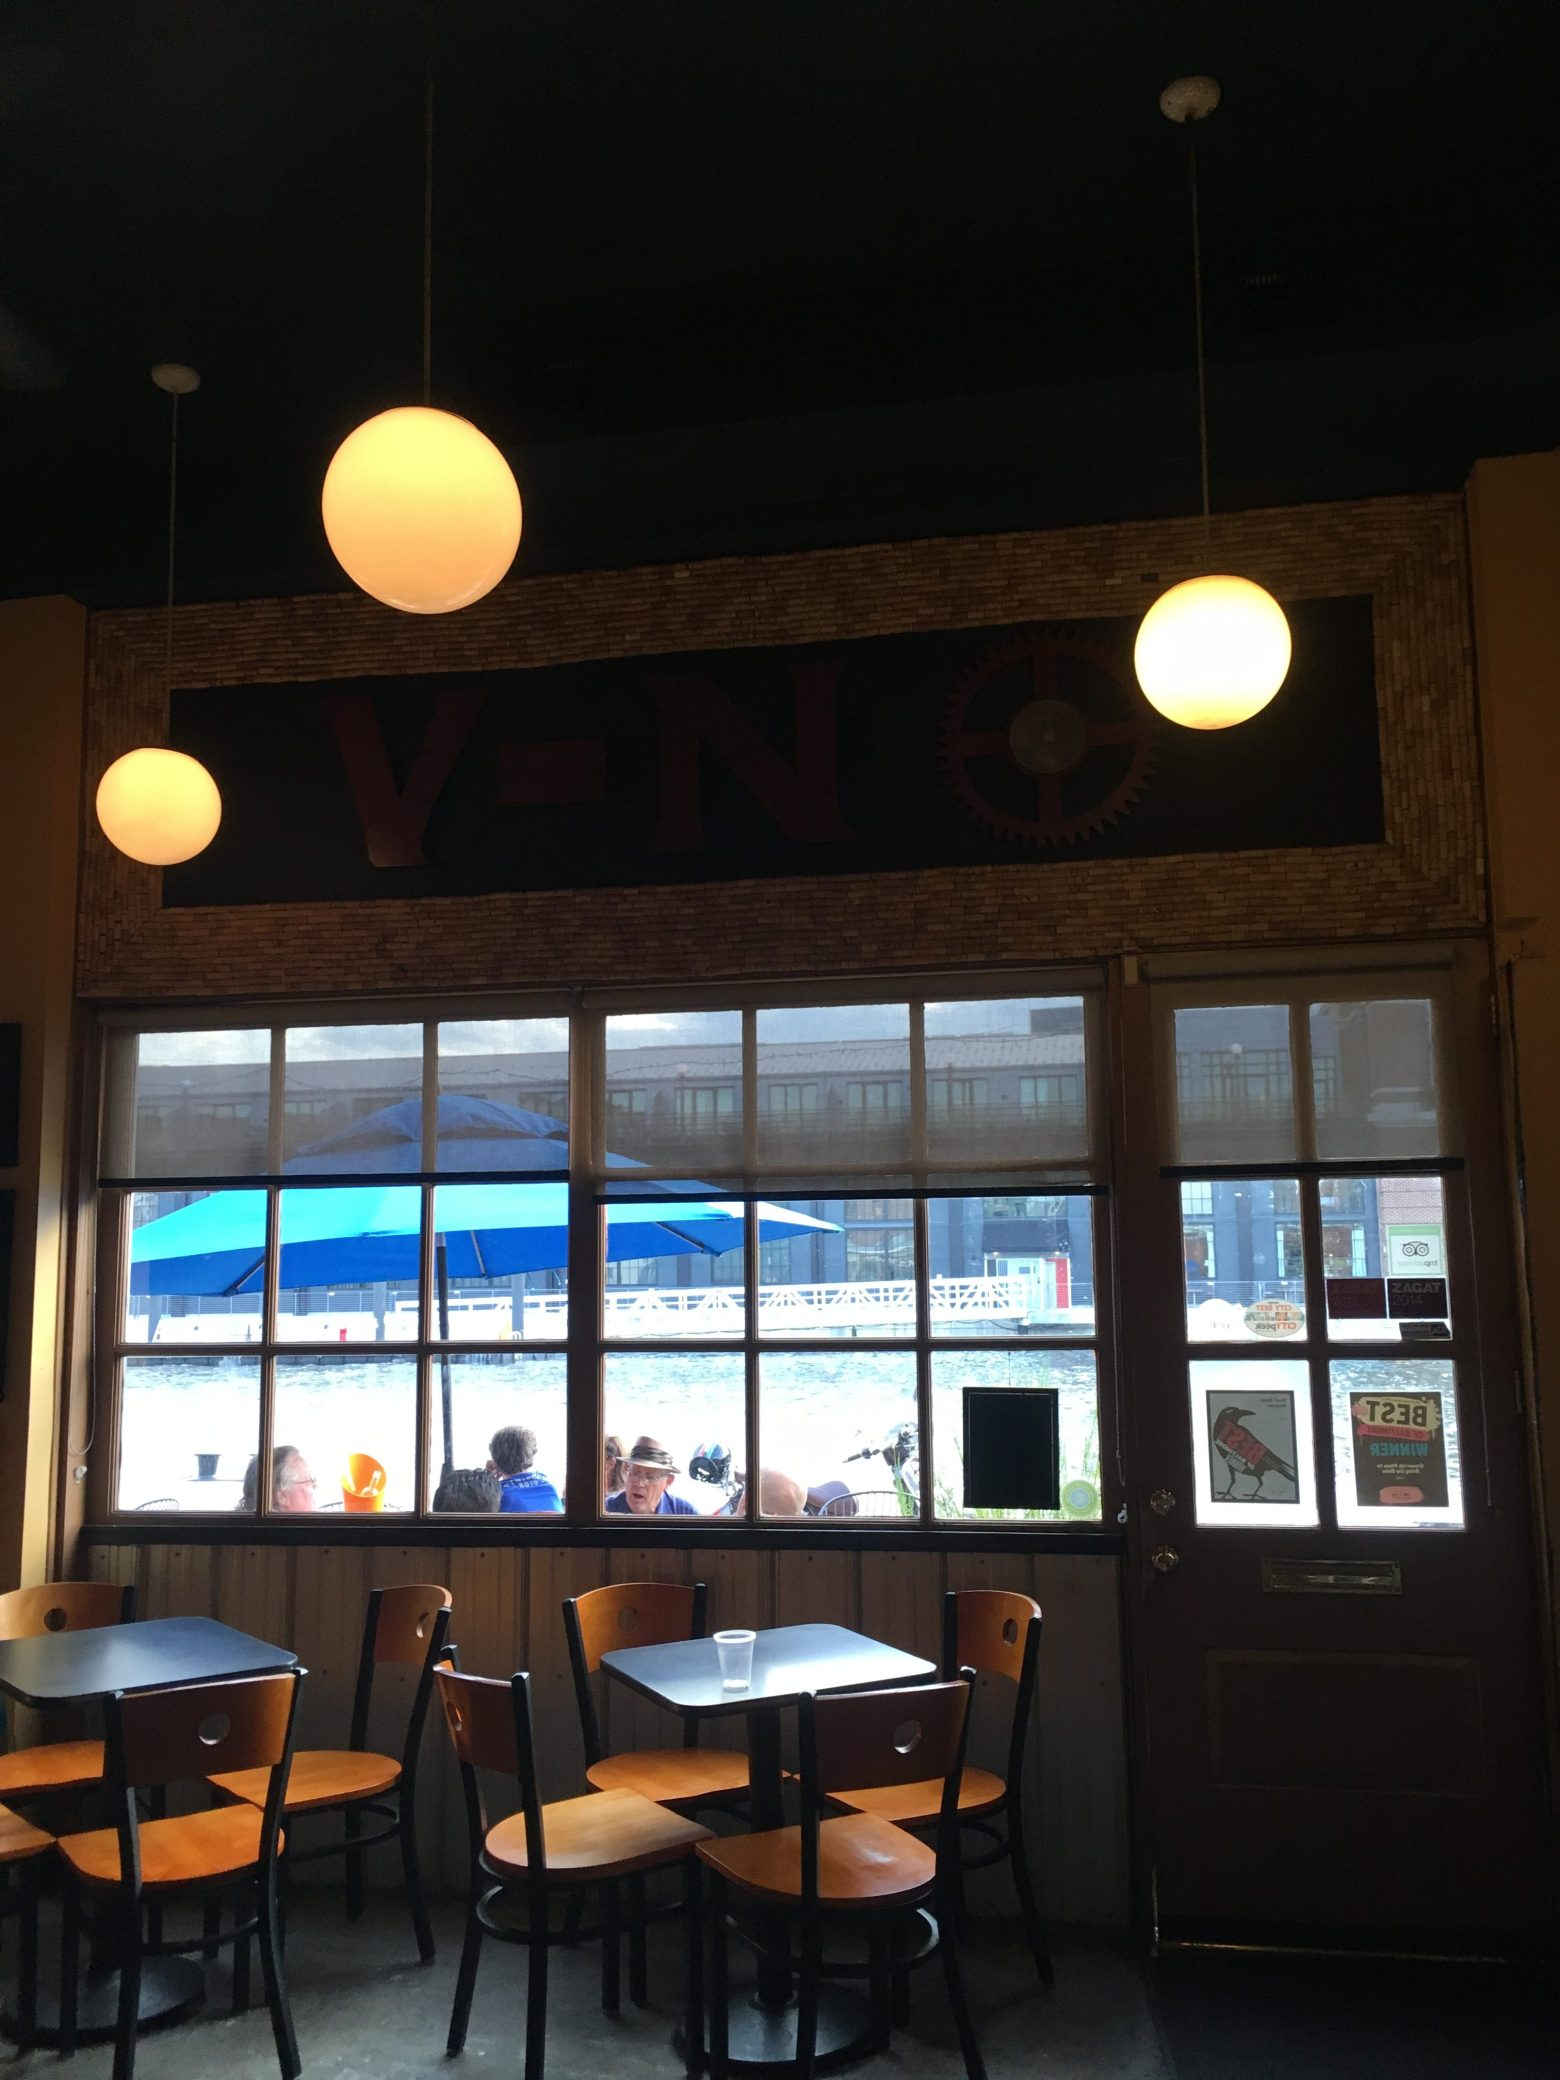 V-NO – Winning Wine bar in Baltimore